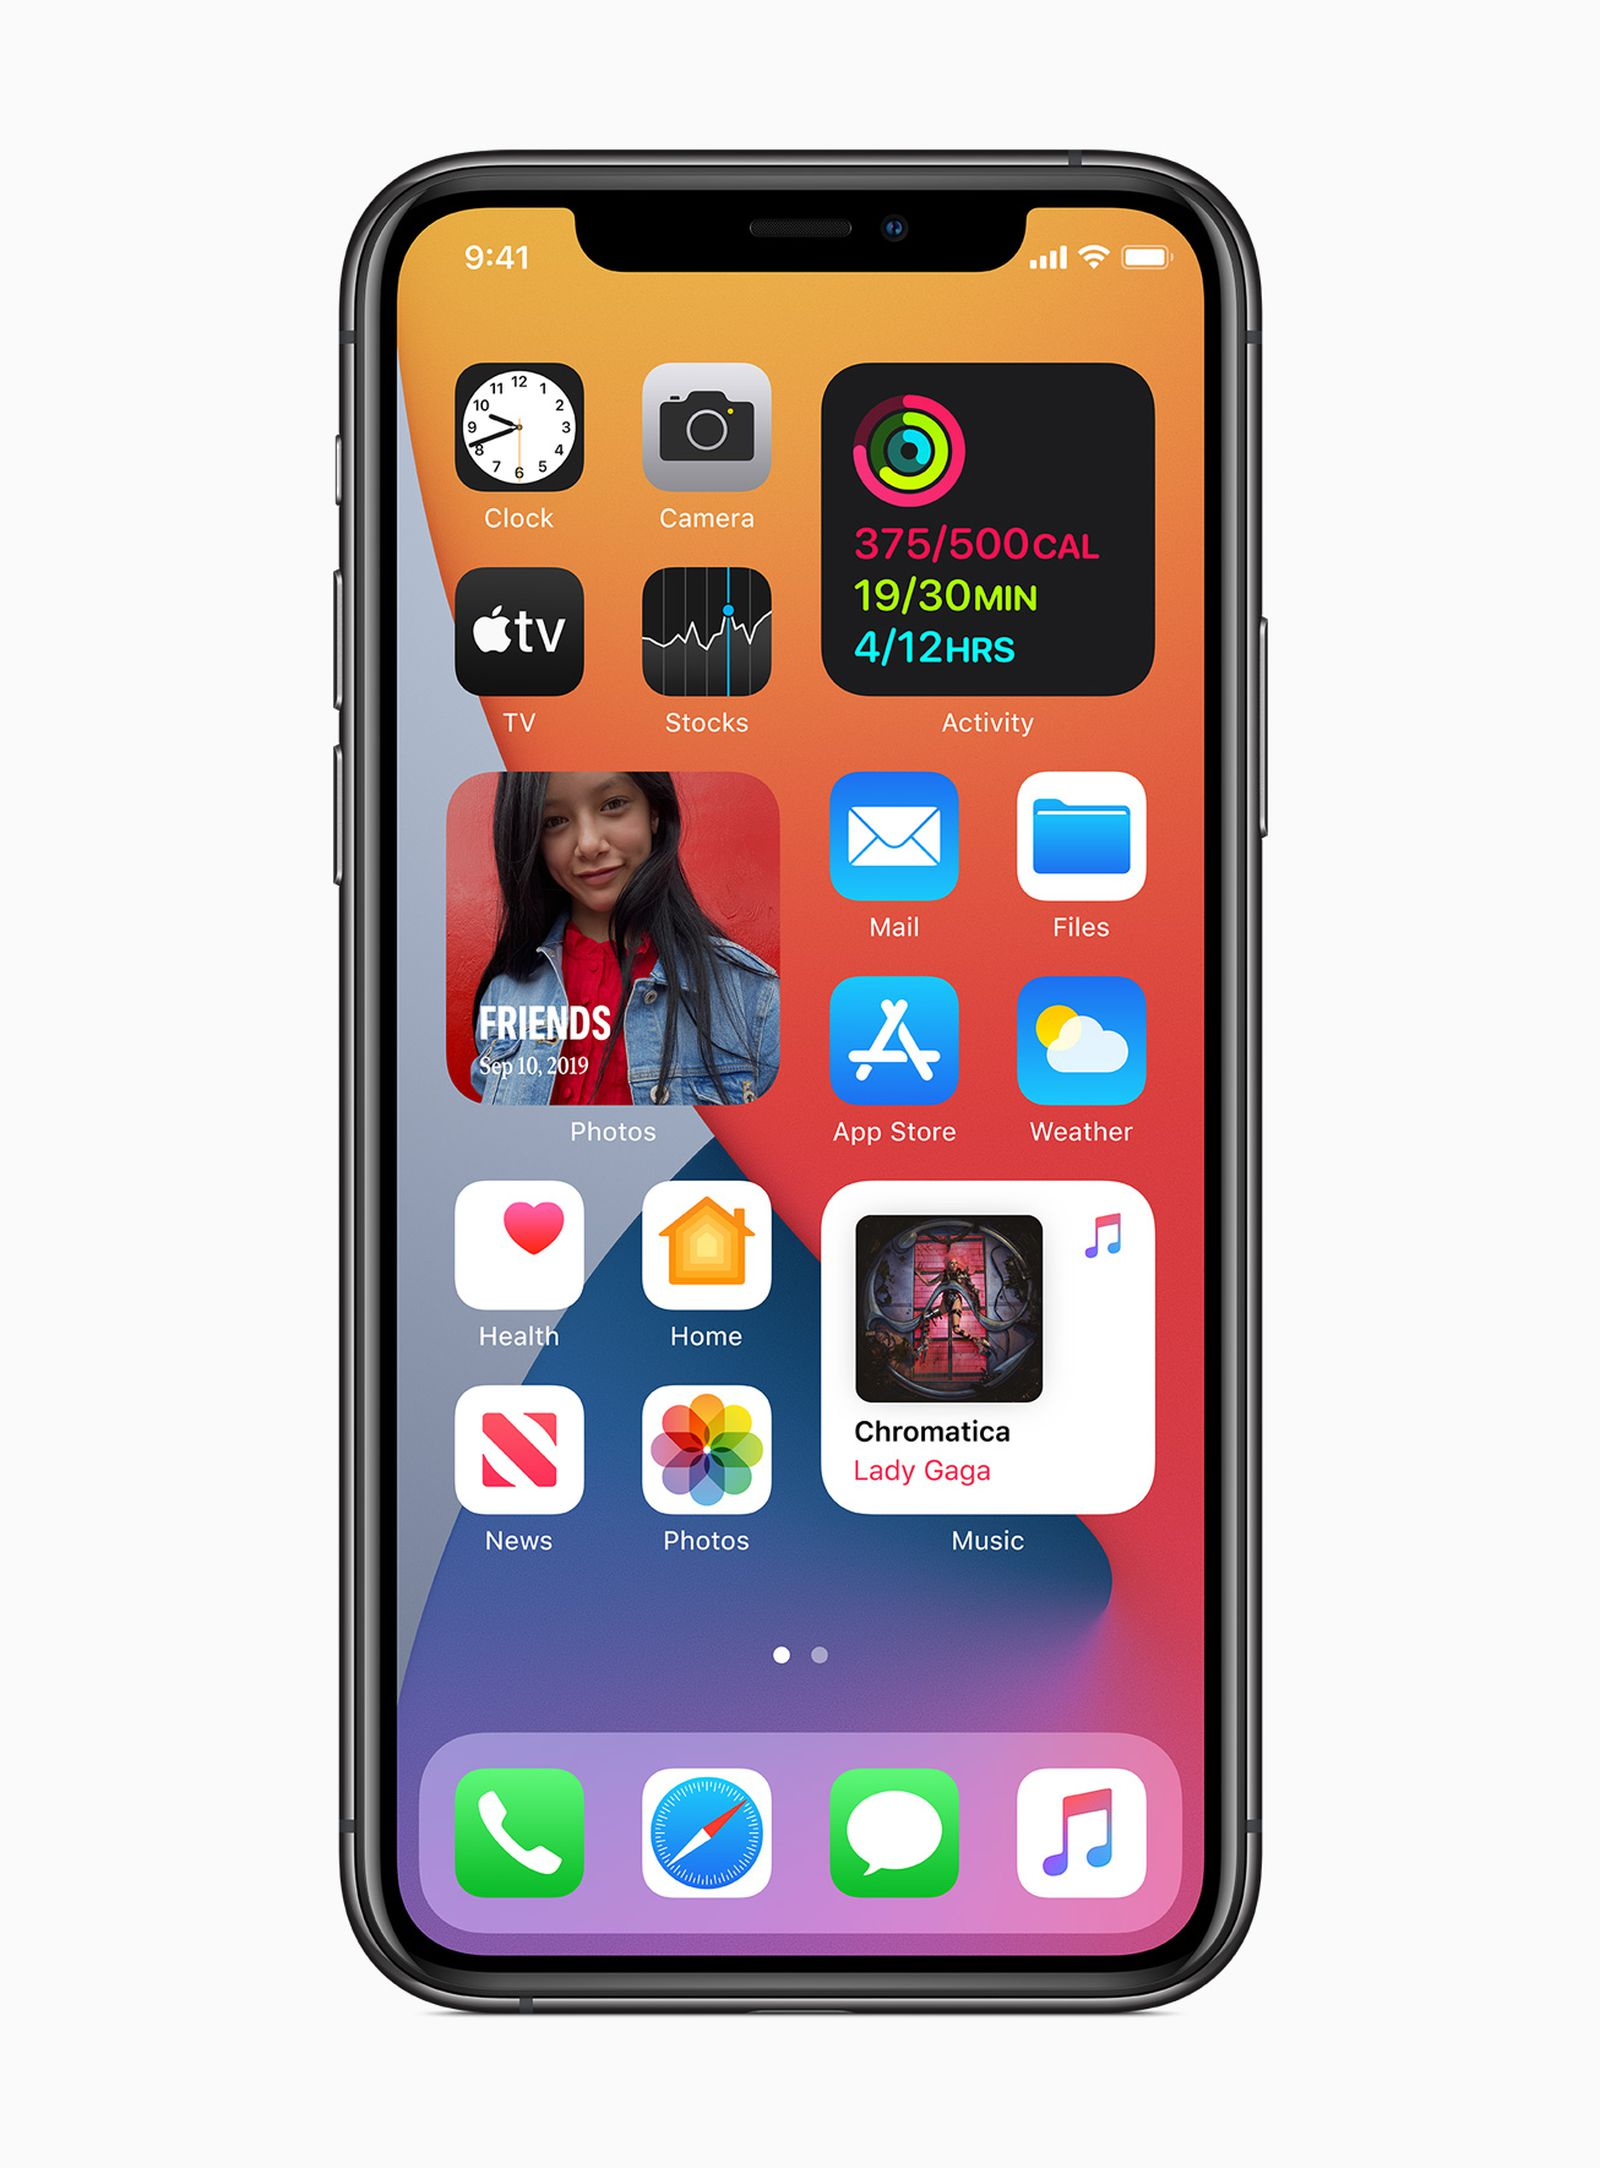 iOS 1 Compatible With iPhone 1s and 1s Plus and Later - MacRumors